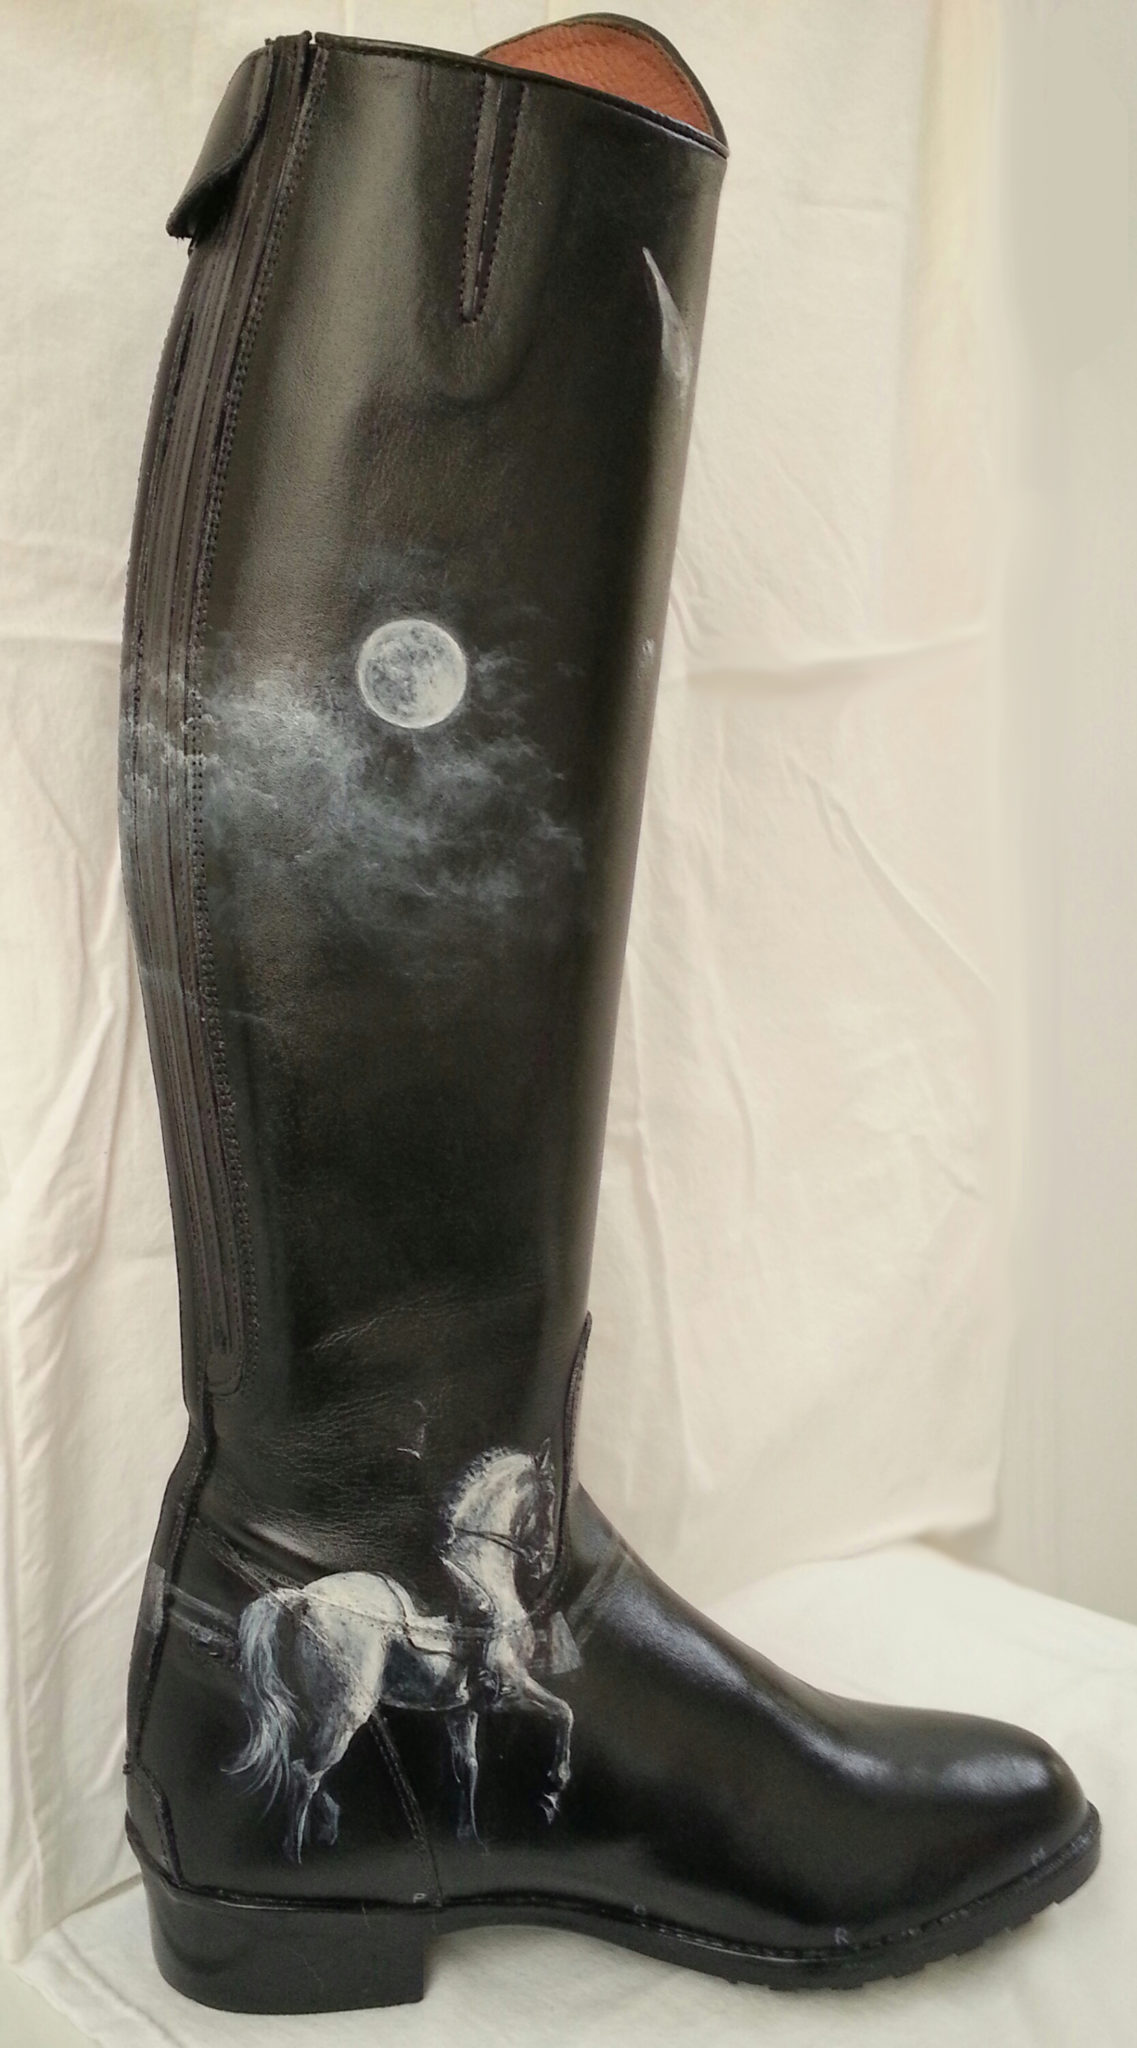 Leather boot painted with acrylilcs by Kathy Taylor Duke